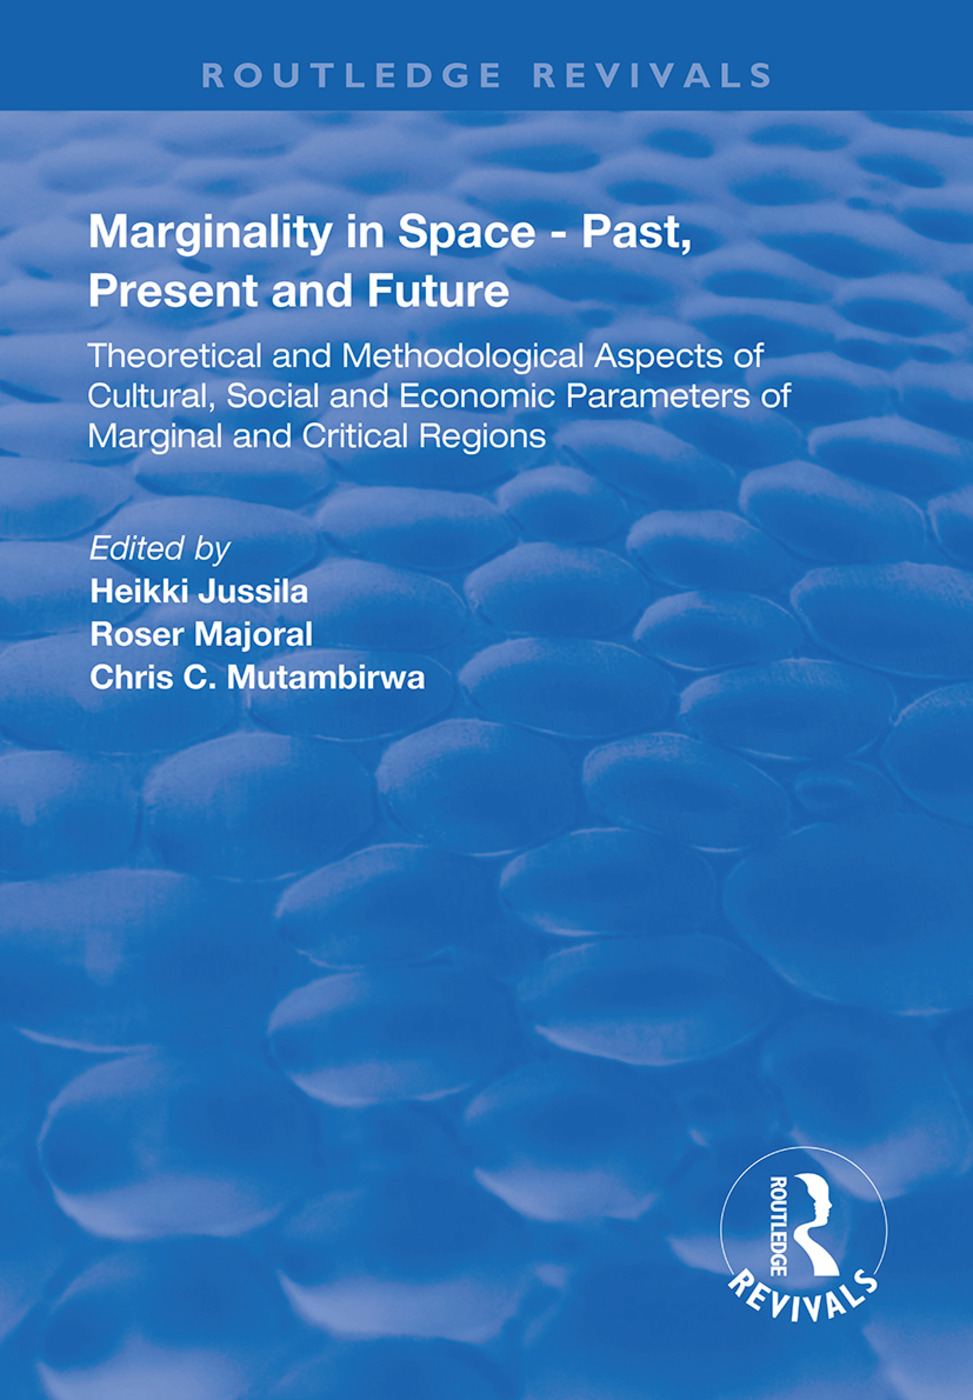 Marginality in Space - Past, Present and Future: Theoretical and Methodological Aspects of Cultural, Social and Economic Parameters of Marginal and Critical Regions book cover